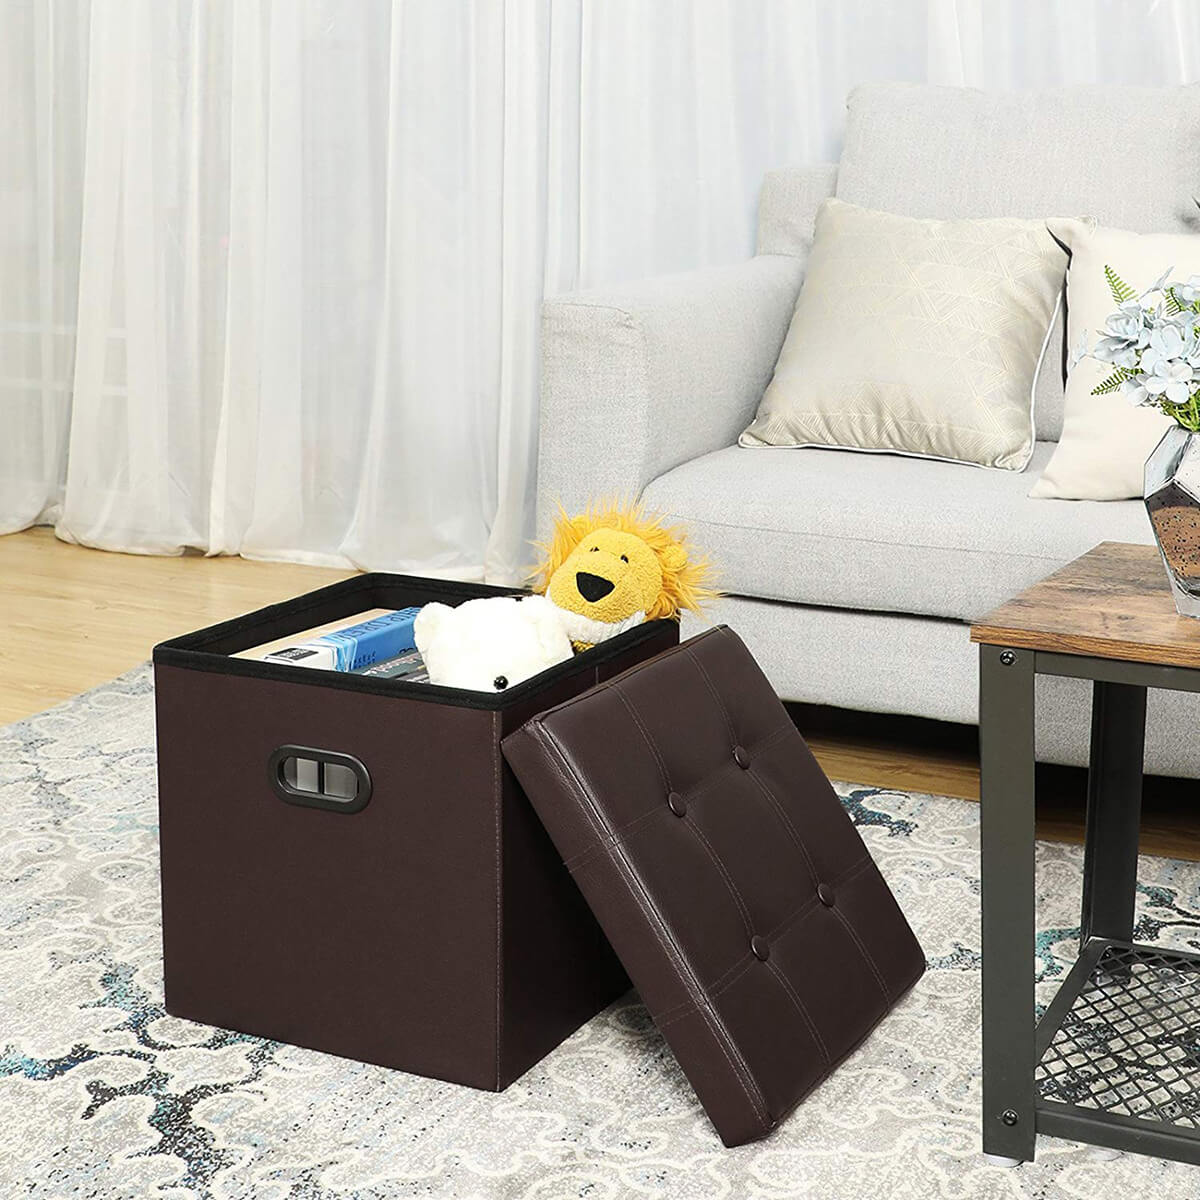 Portable Folding Storage Ottoman with Handles